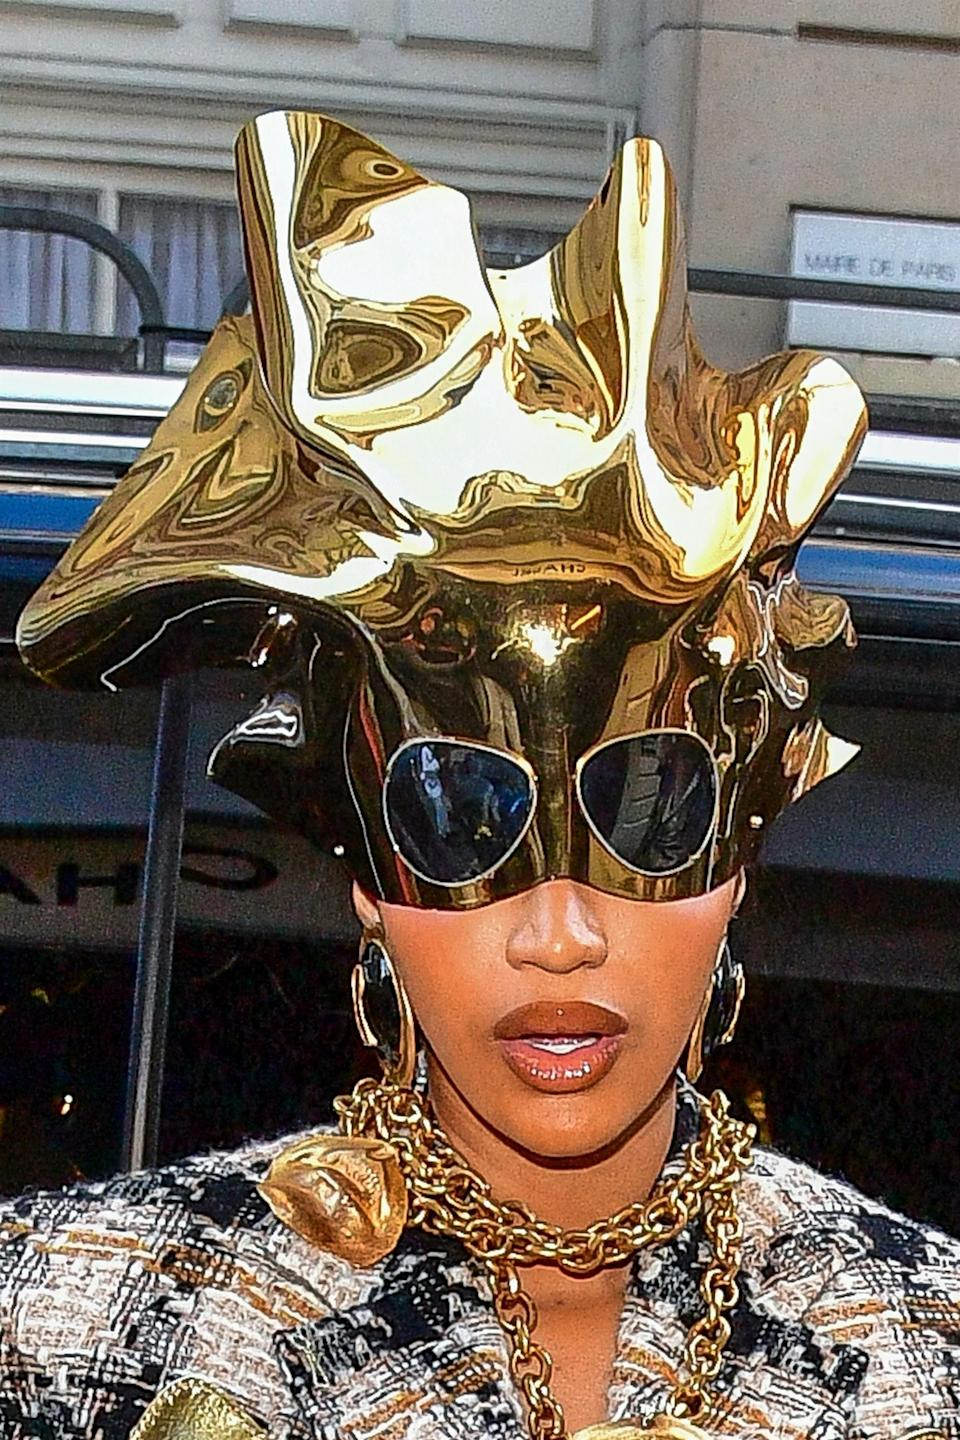 Close-up of Cardi's gold headpiece, with attached sunglasses